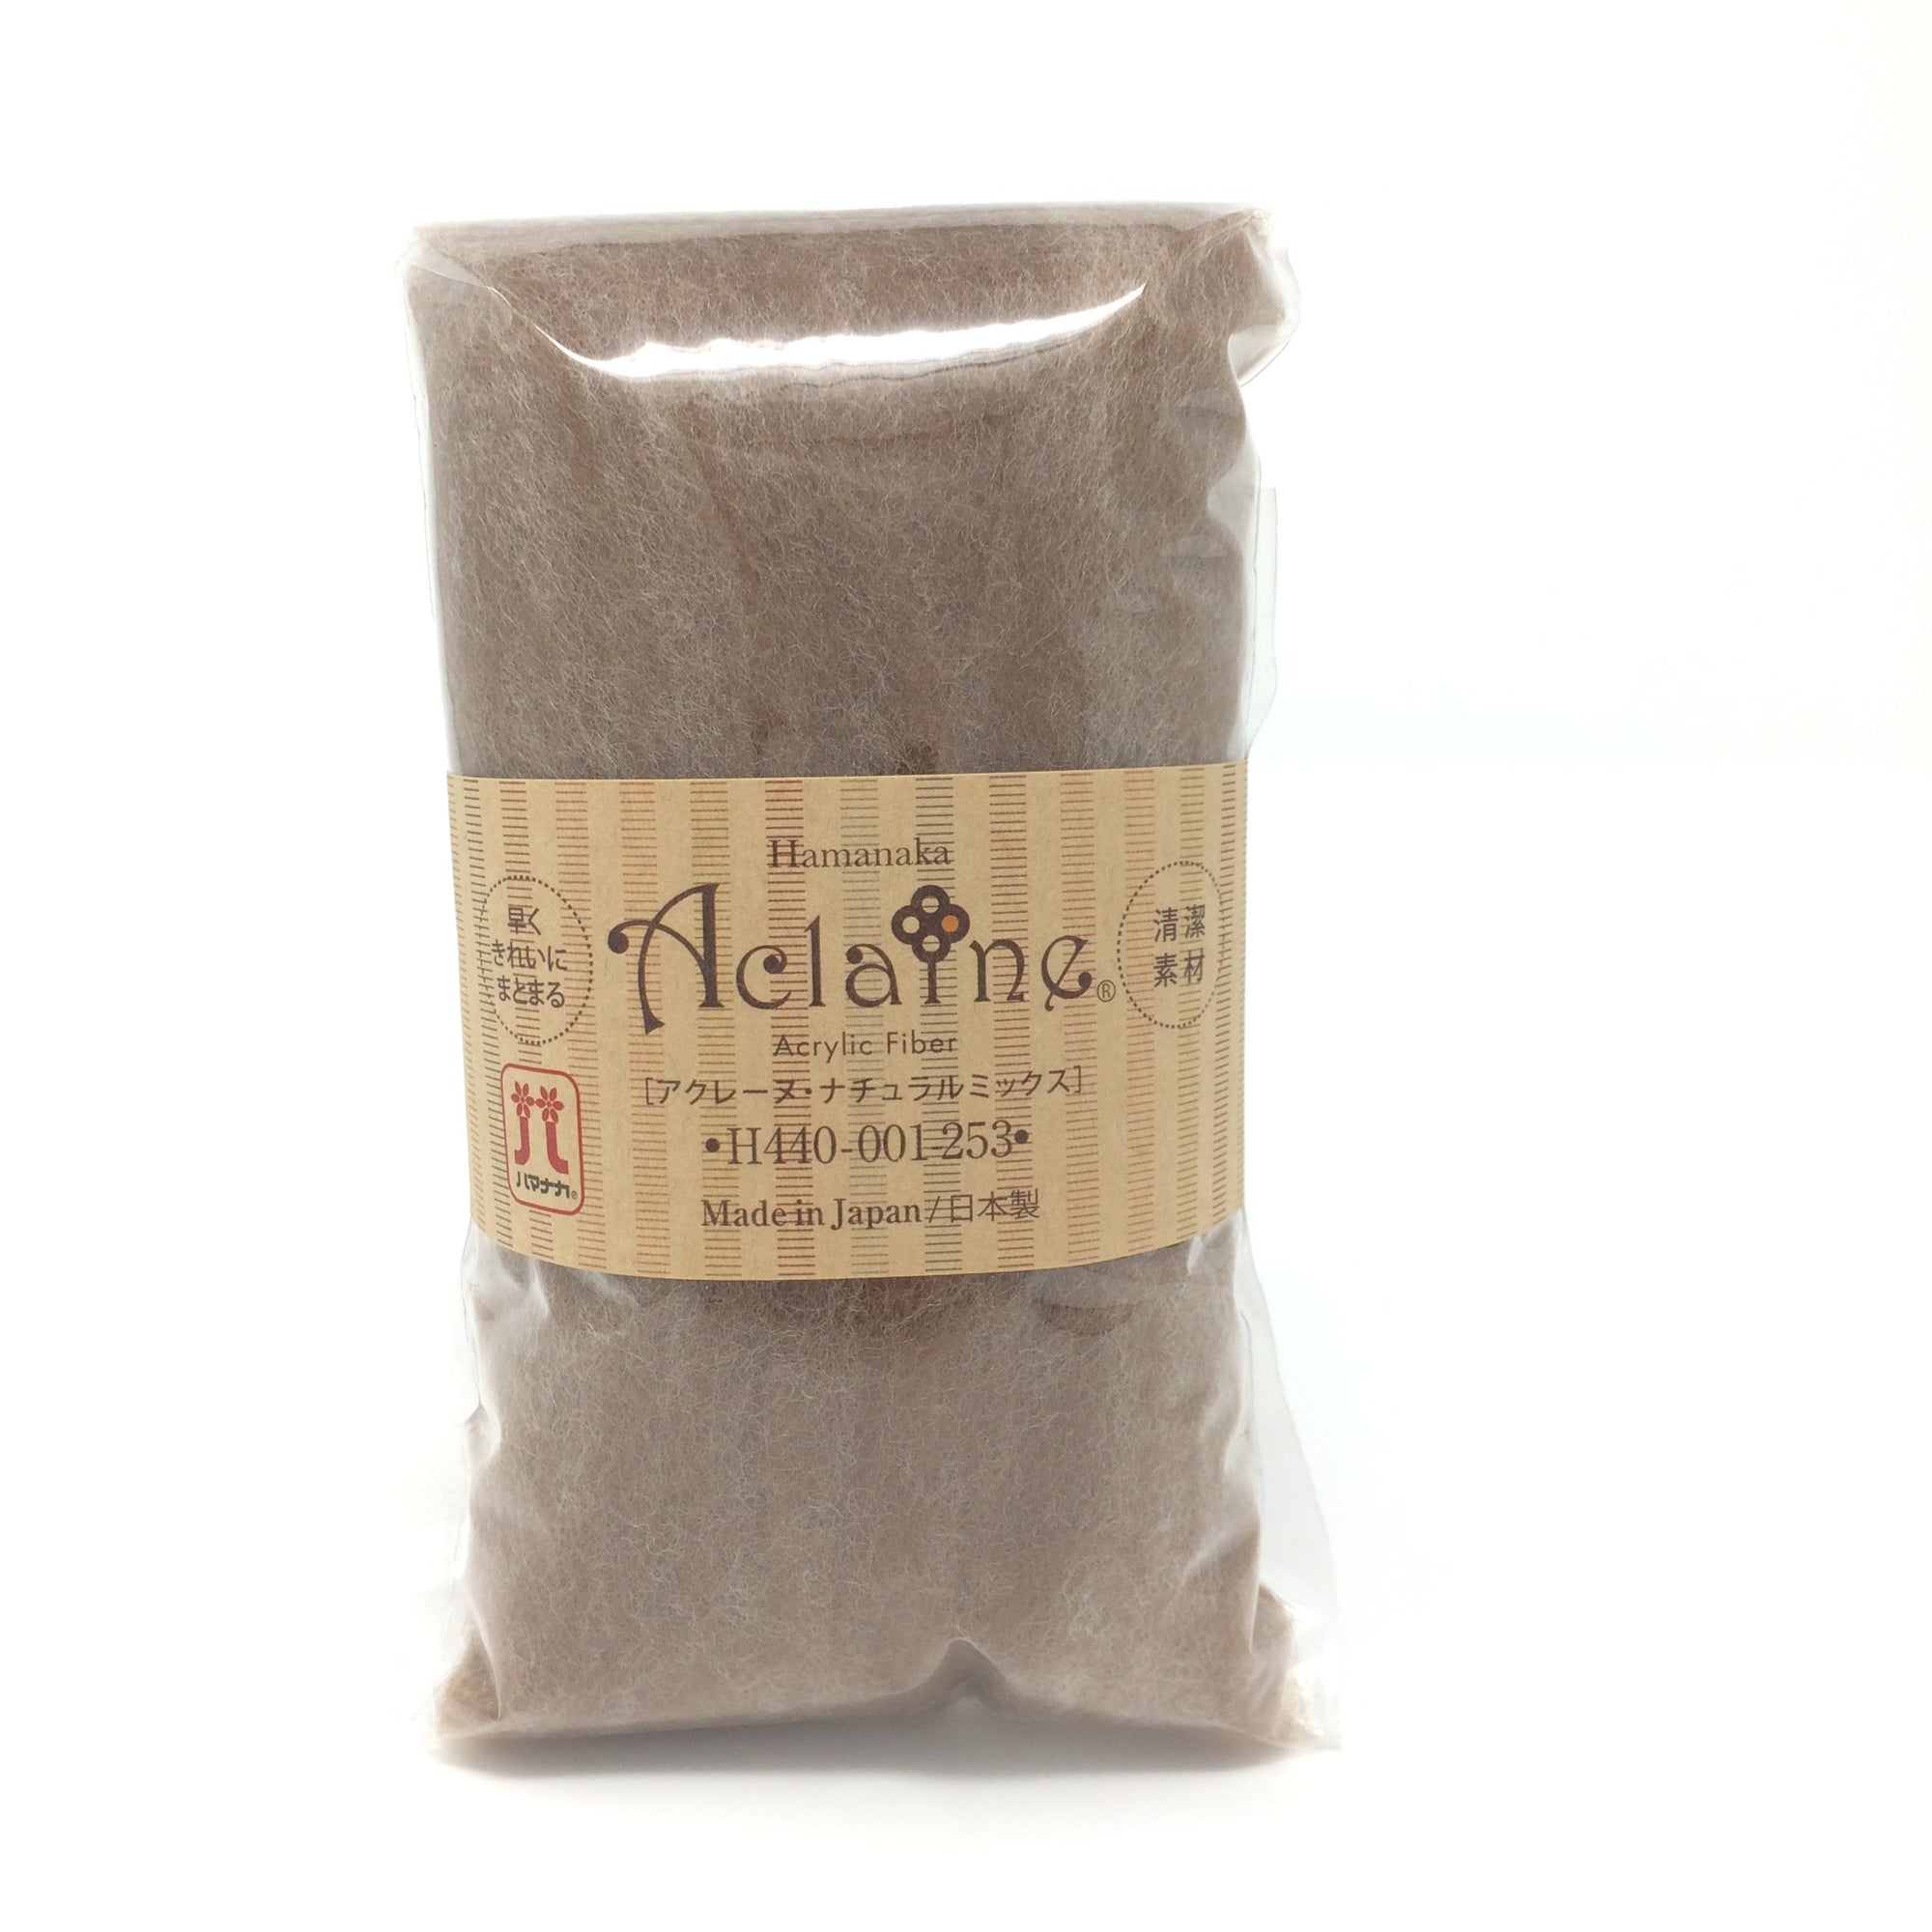 "Hamanaka Aclaine ""Natural Mix"" Acrylic Fibre - Dark Brown 15g"